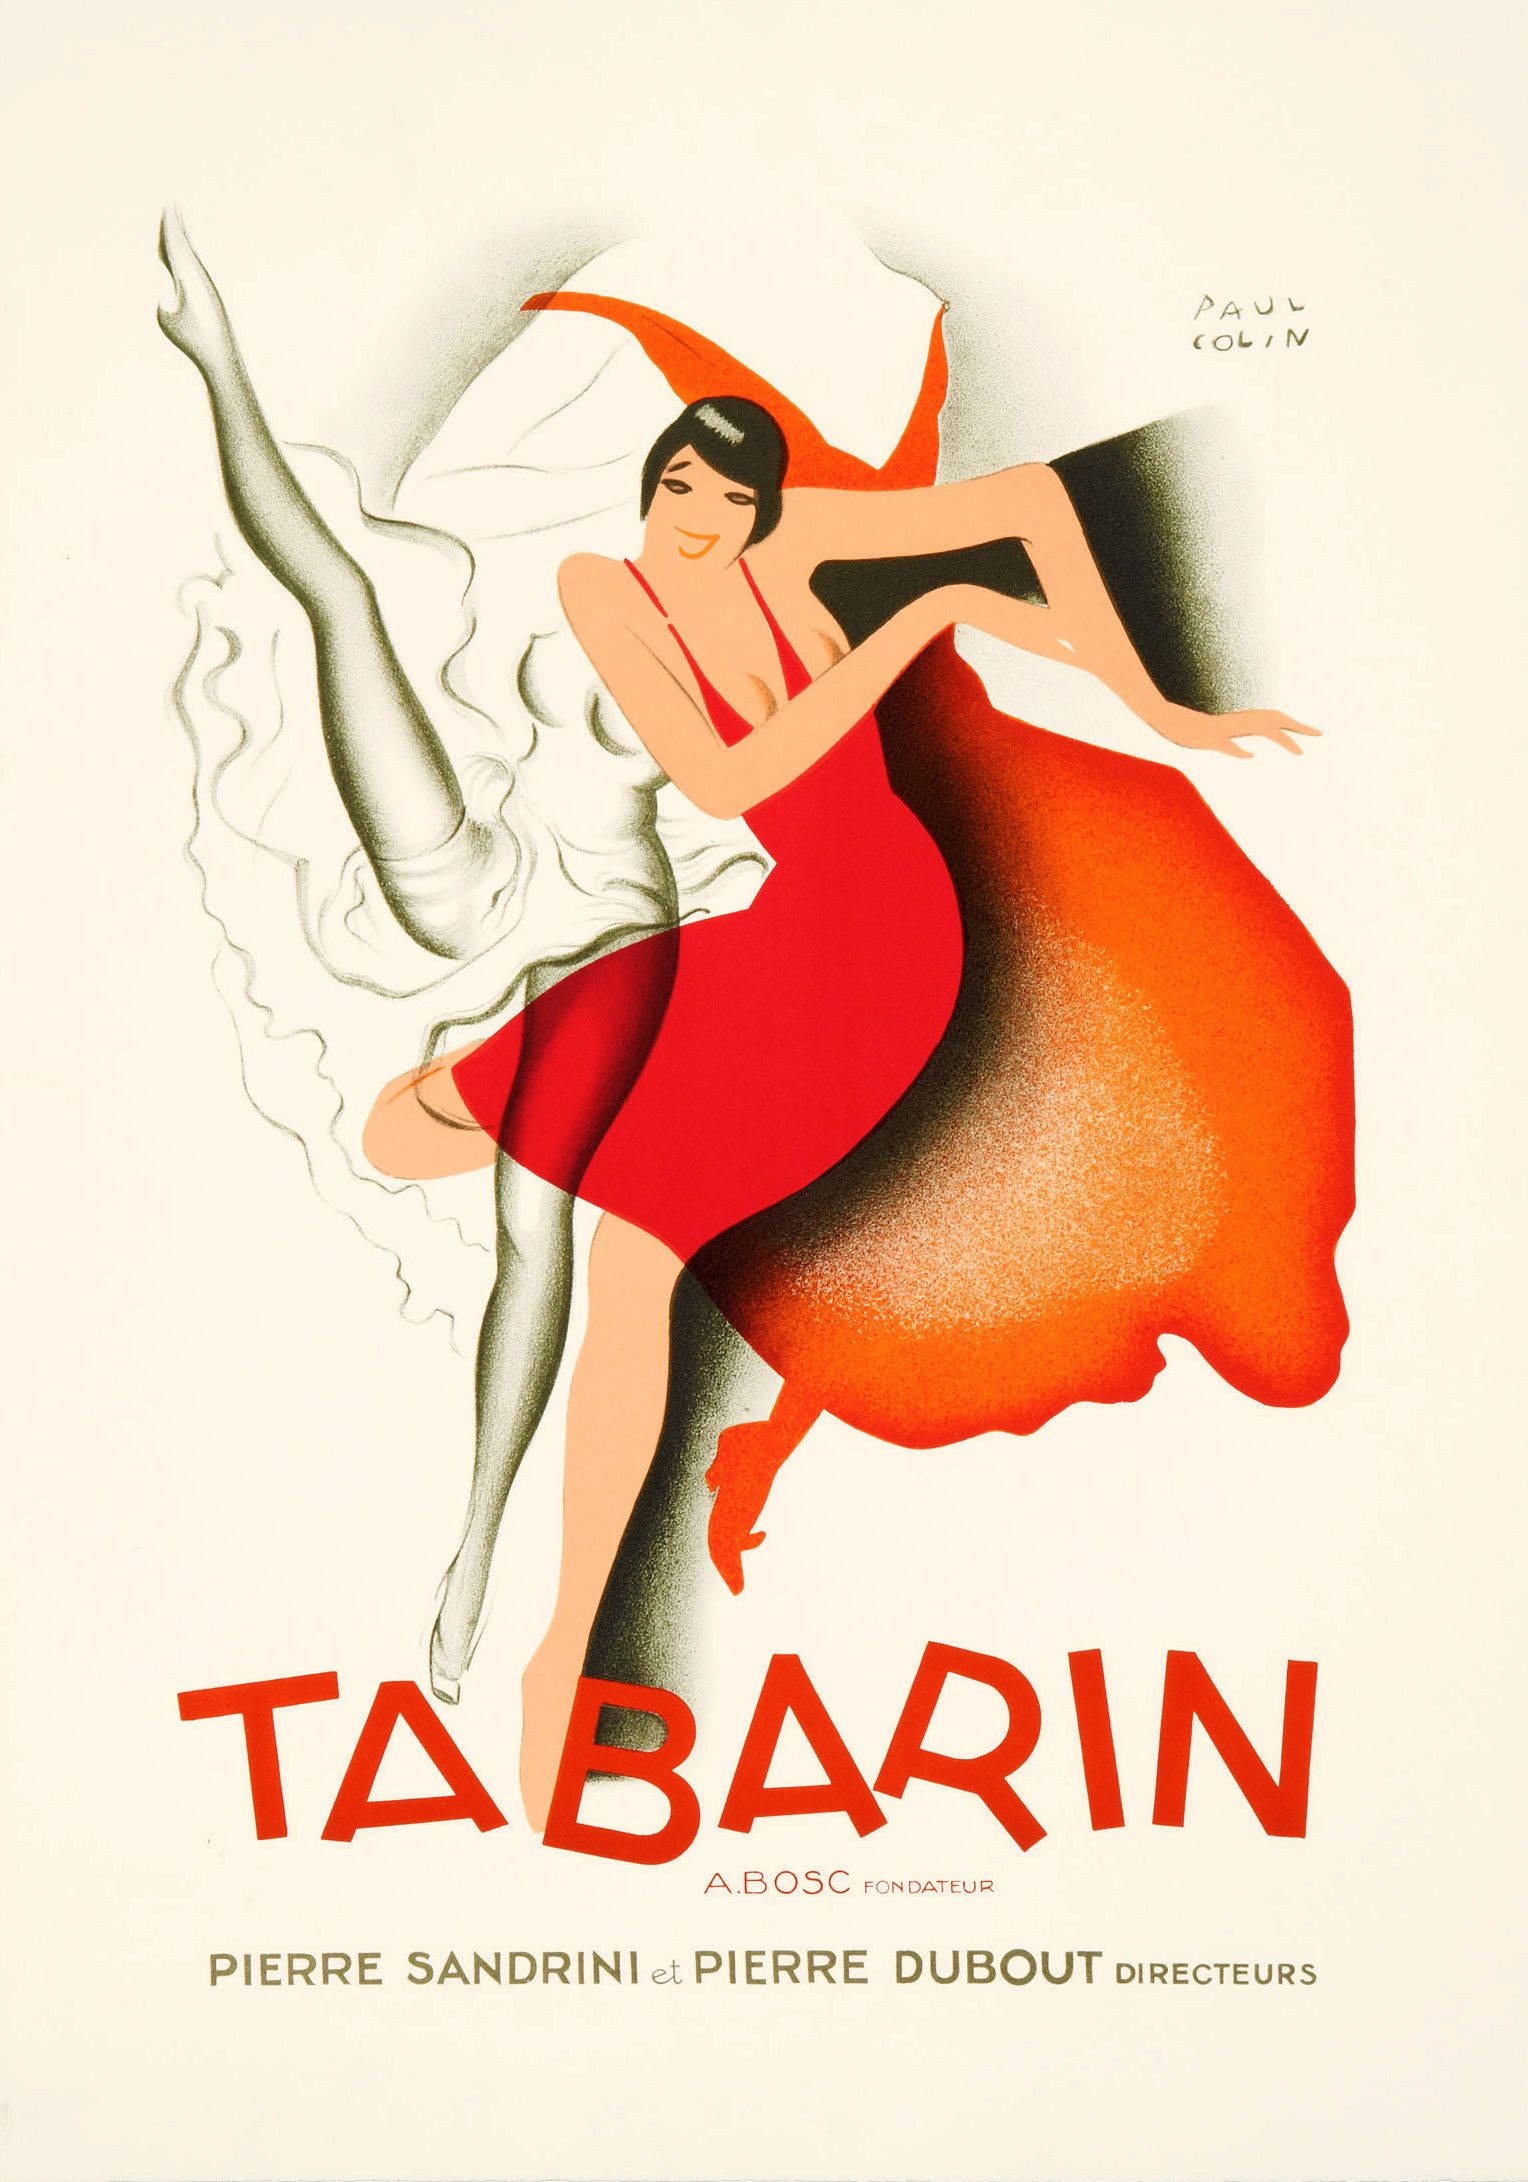 PAUL COLIN. Tabarin. 1924. Cafe posters, Vintage posters